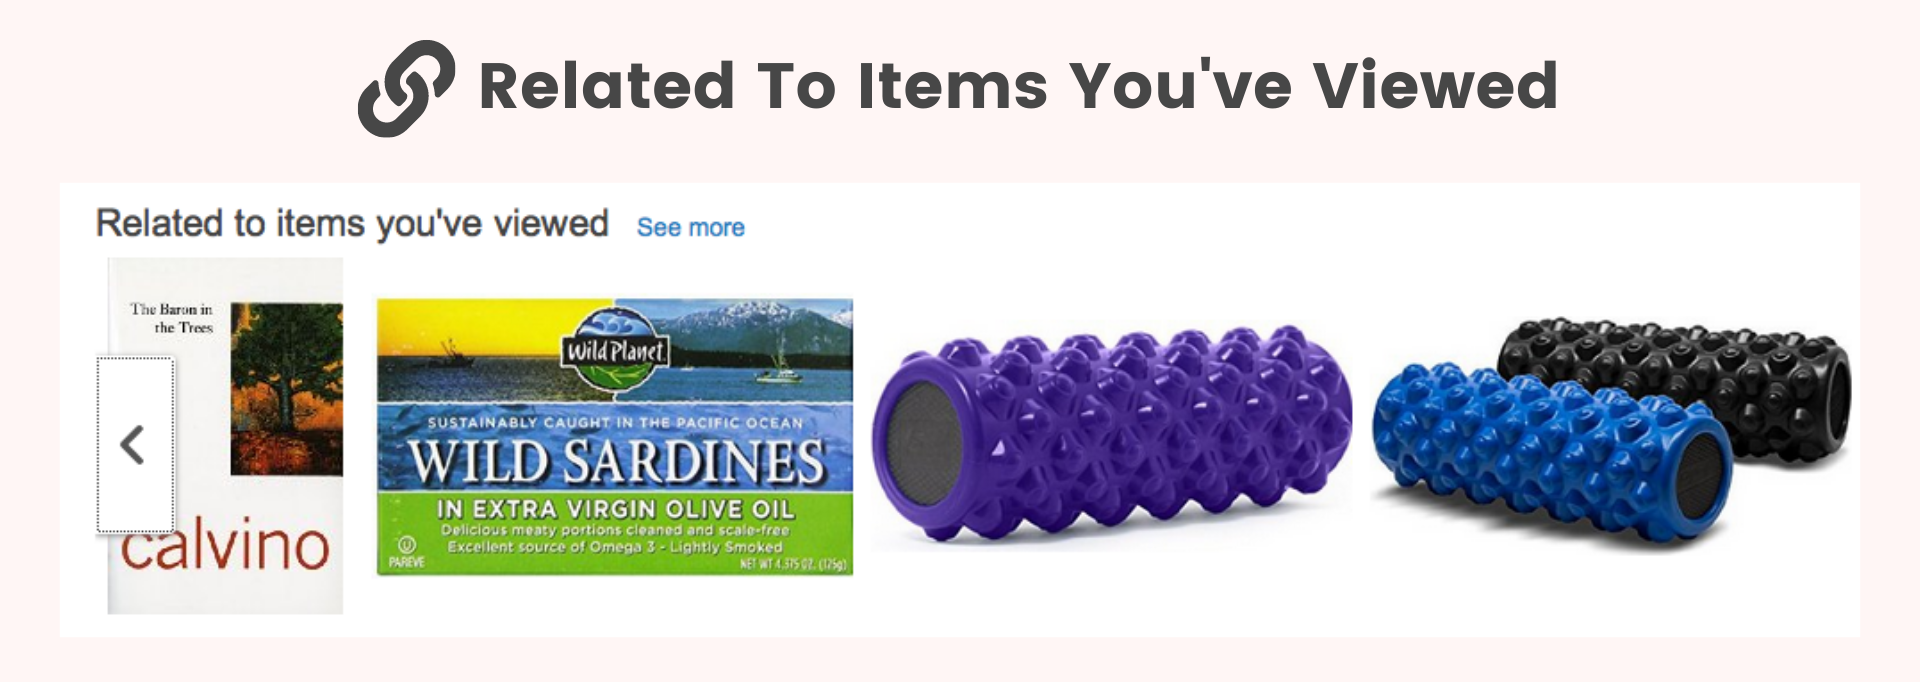 Amazon related to items you've viewed